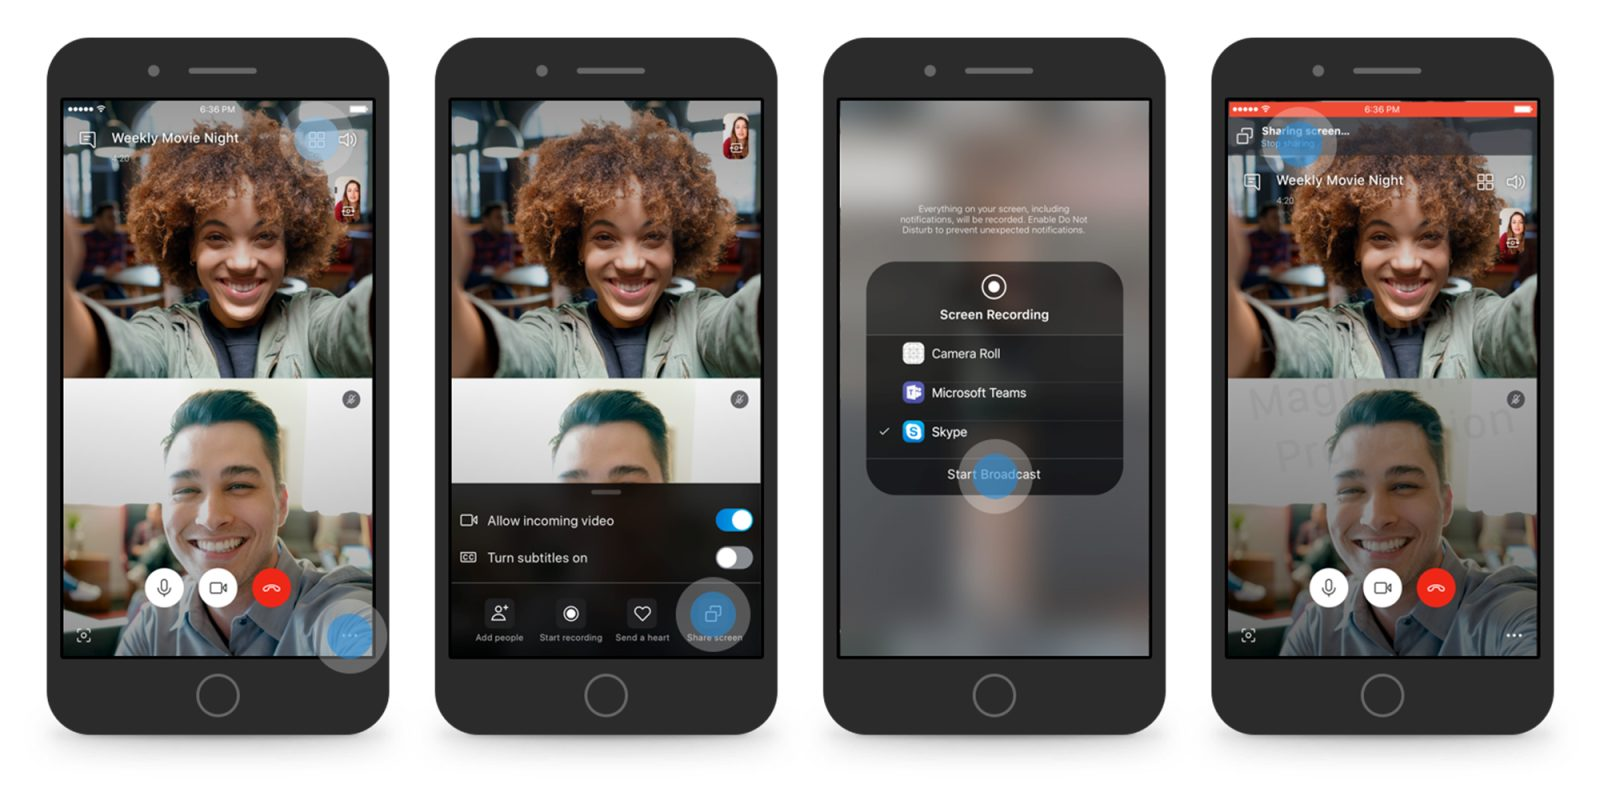 Skype adding screen sharing to Android, iOS in latest beta - 9to5Google